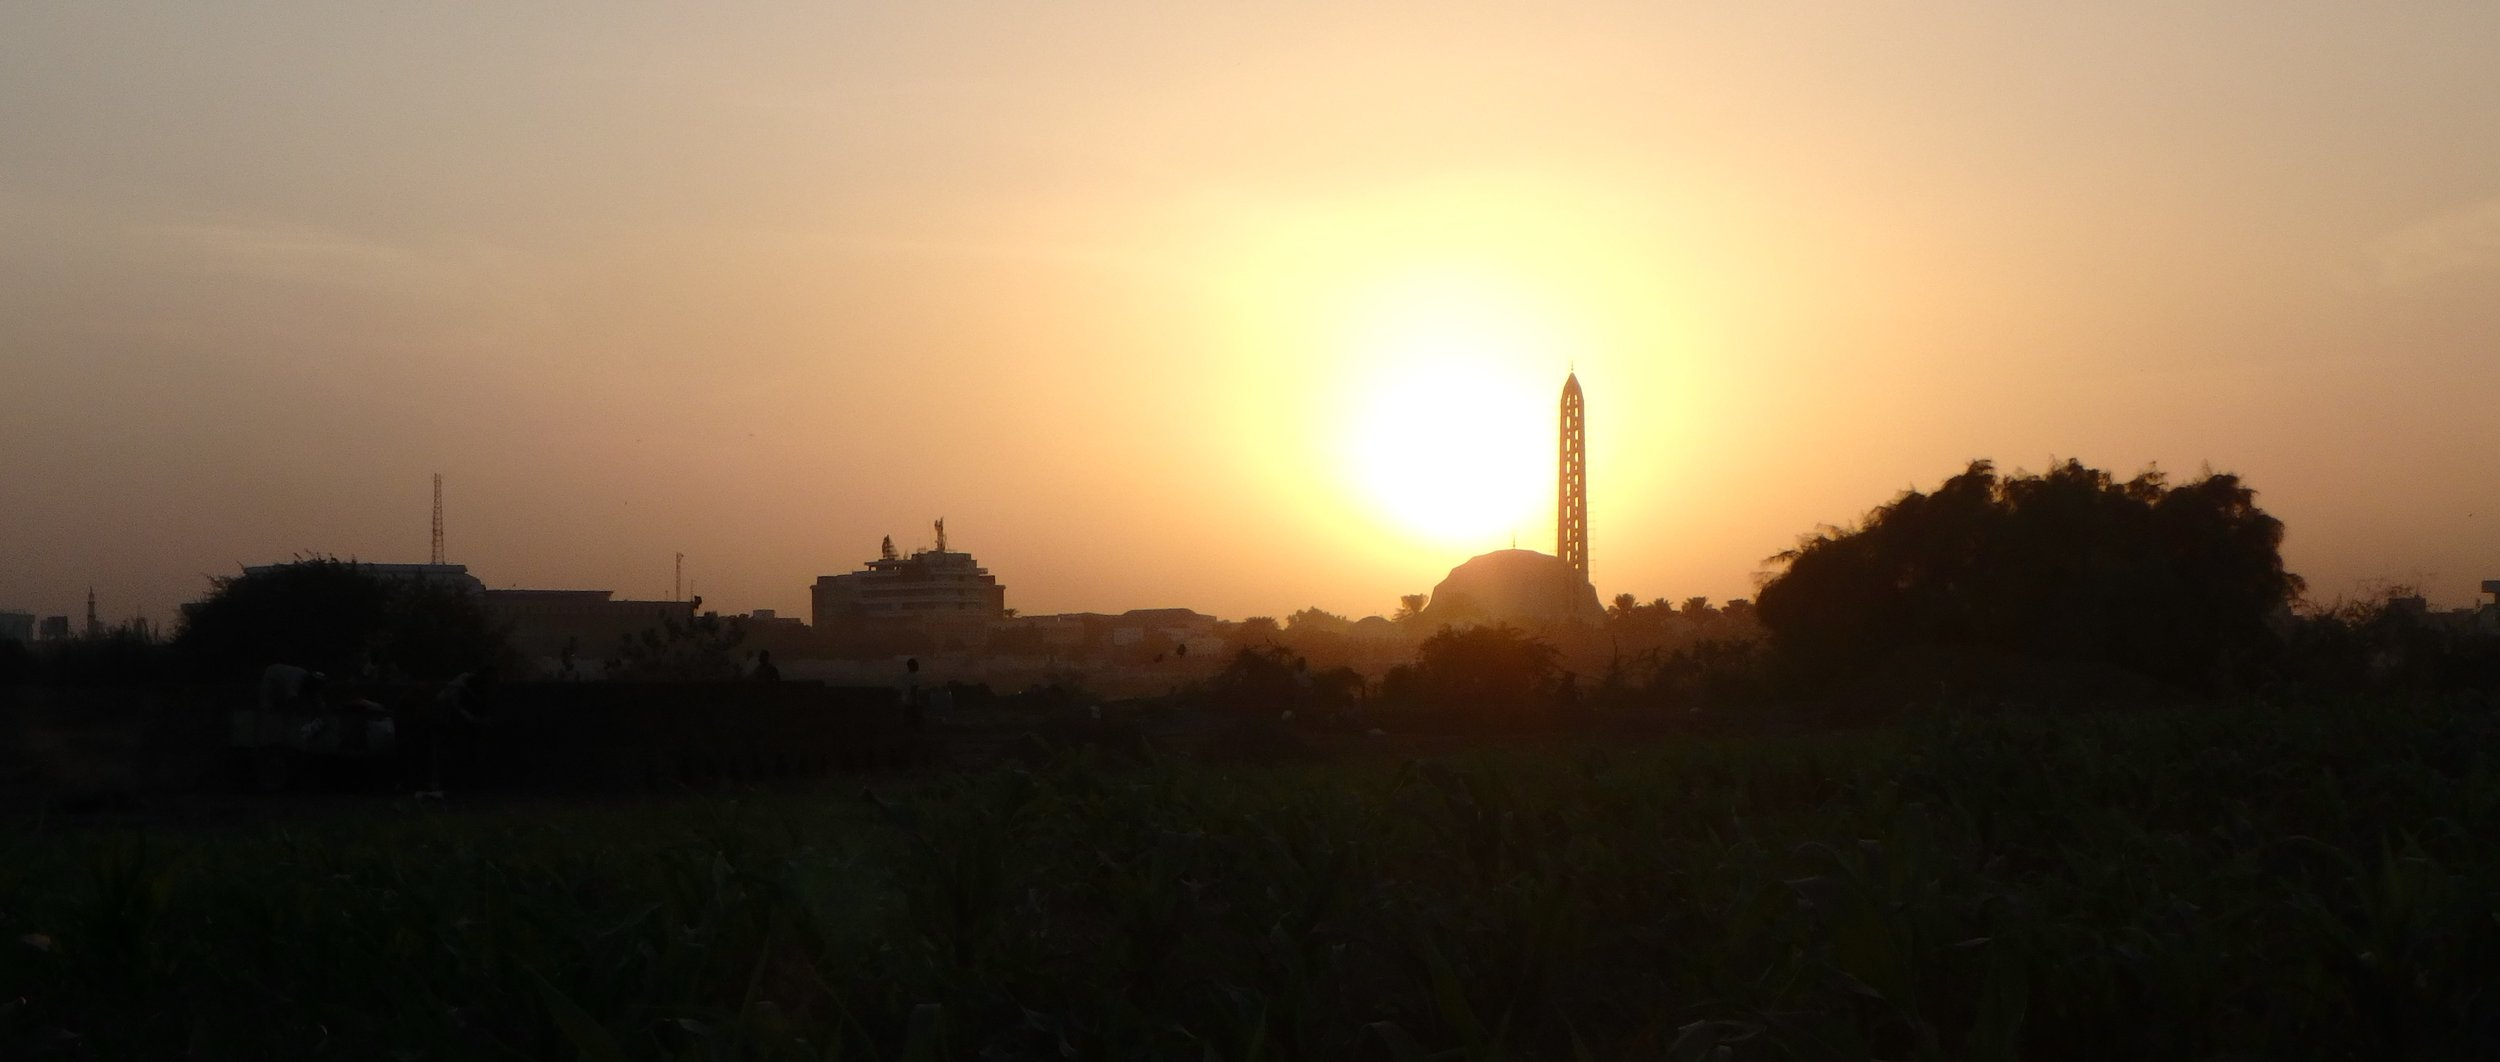 Sunset and Khartoum skyline.